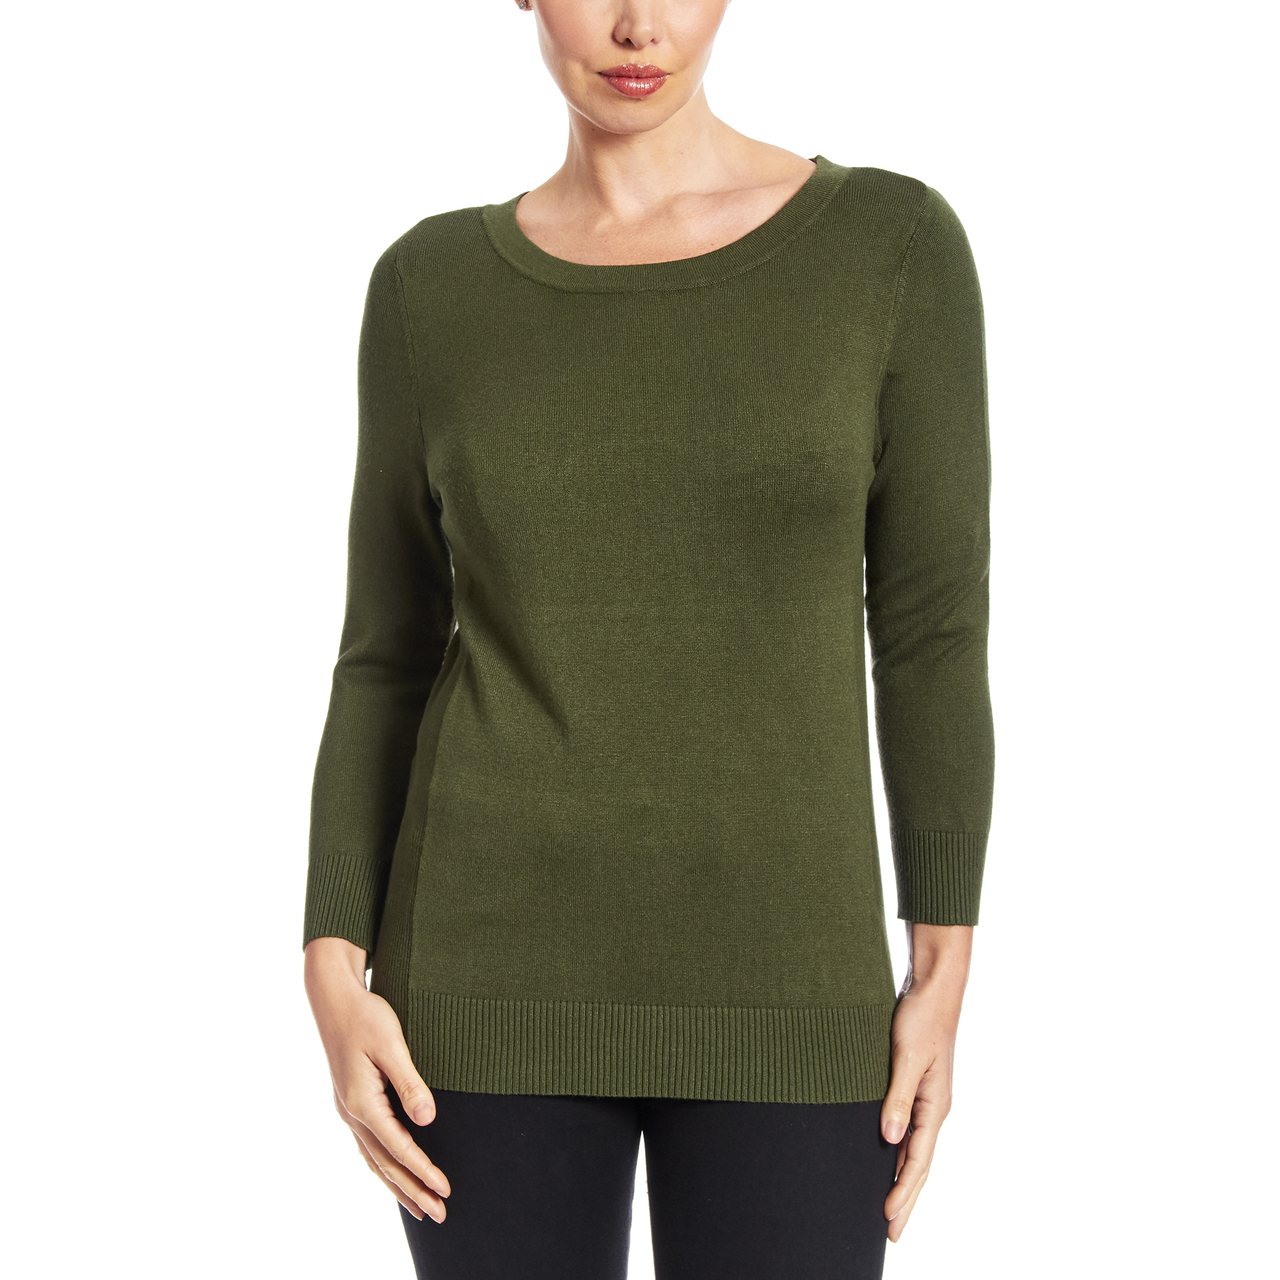 Boat Neck Sweater With Side Rib Detail In Olive